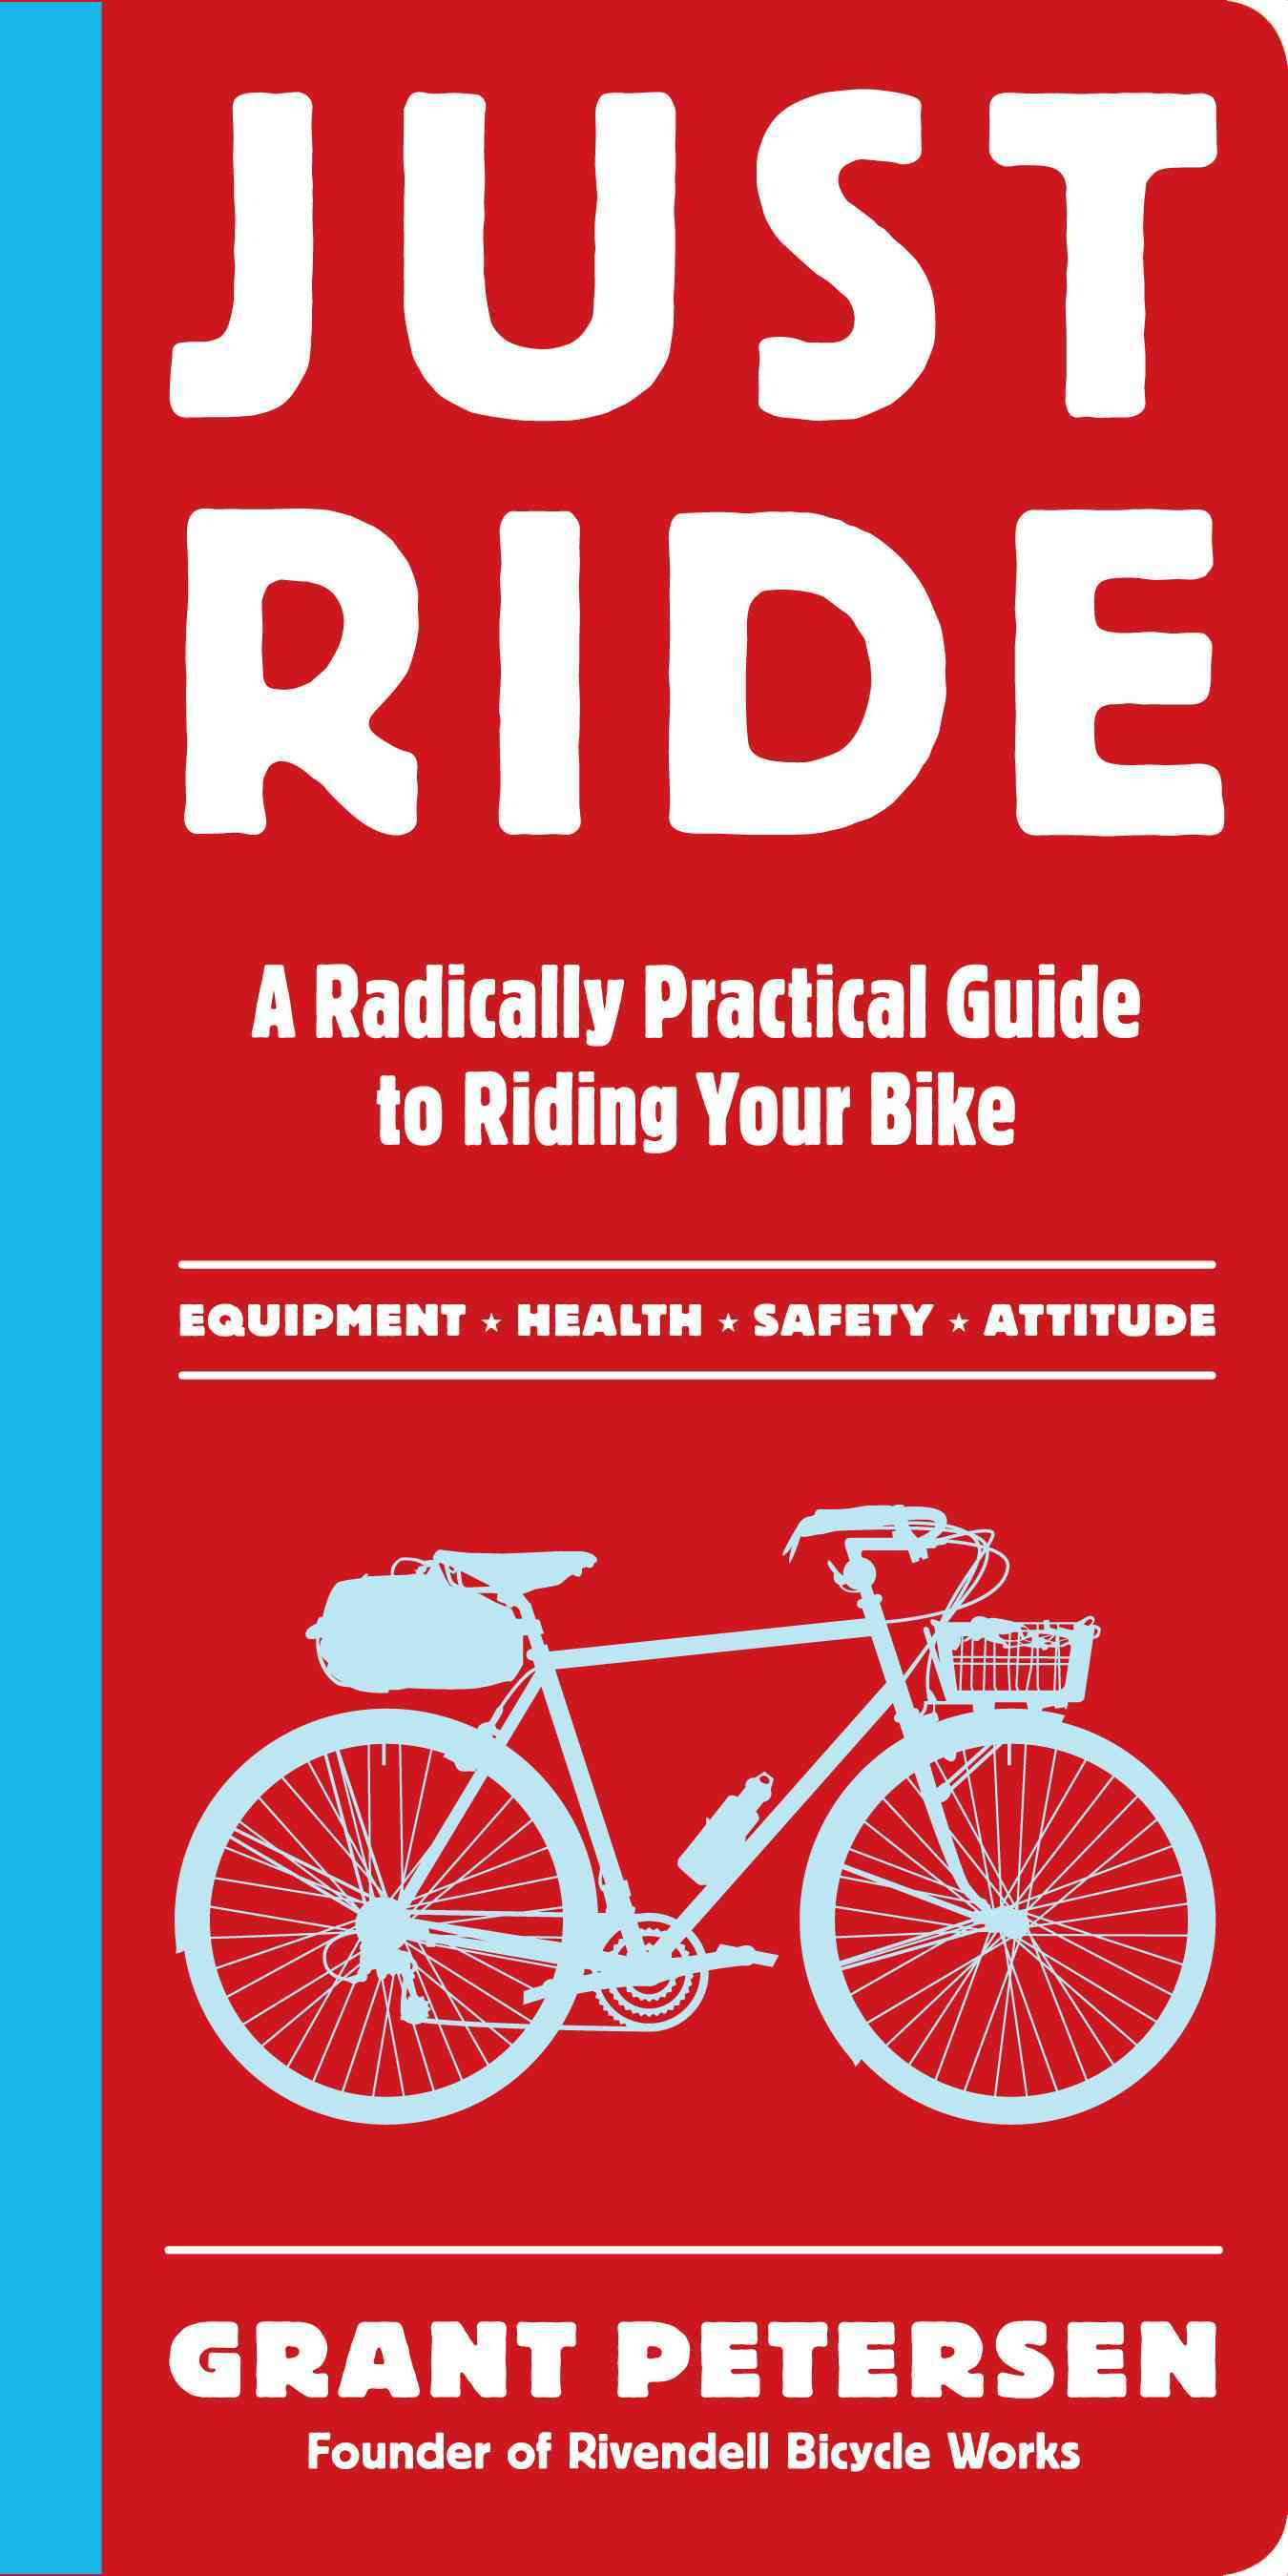 Just Ride: A Radically Practical Guide to Riding Your Bike (Paperback)